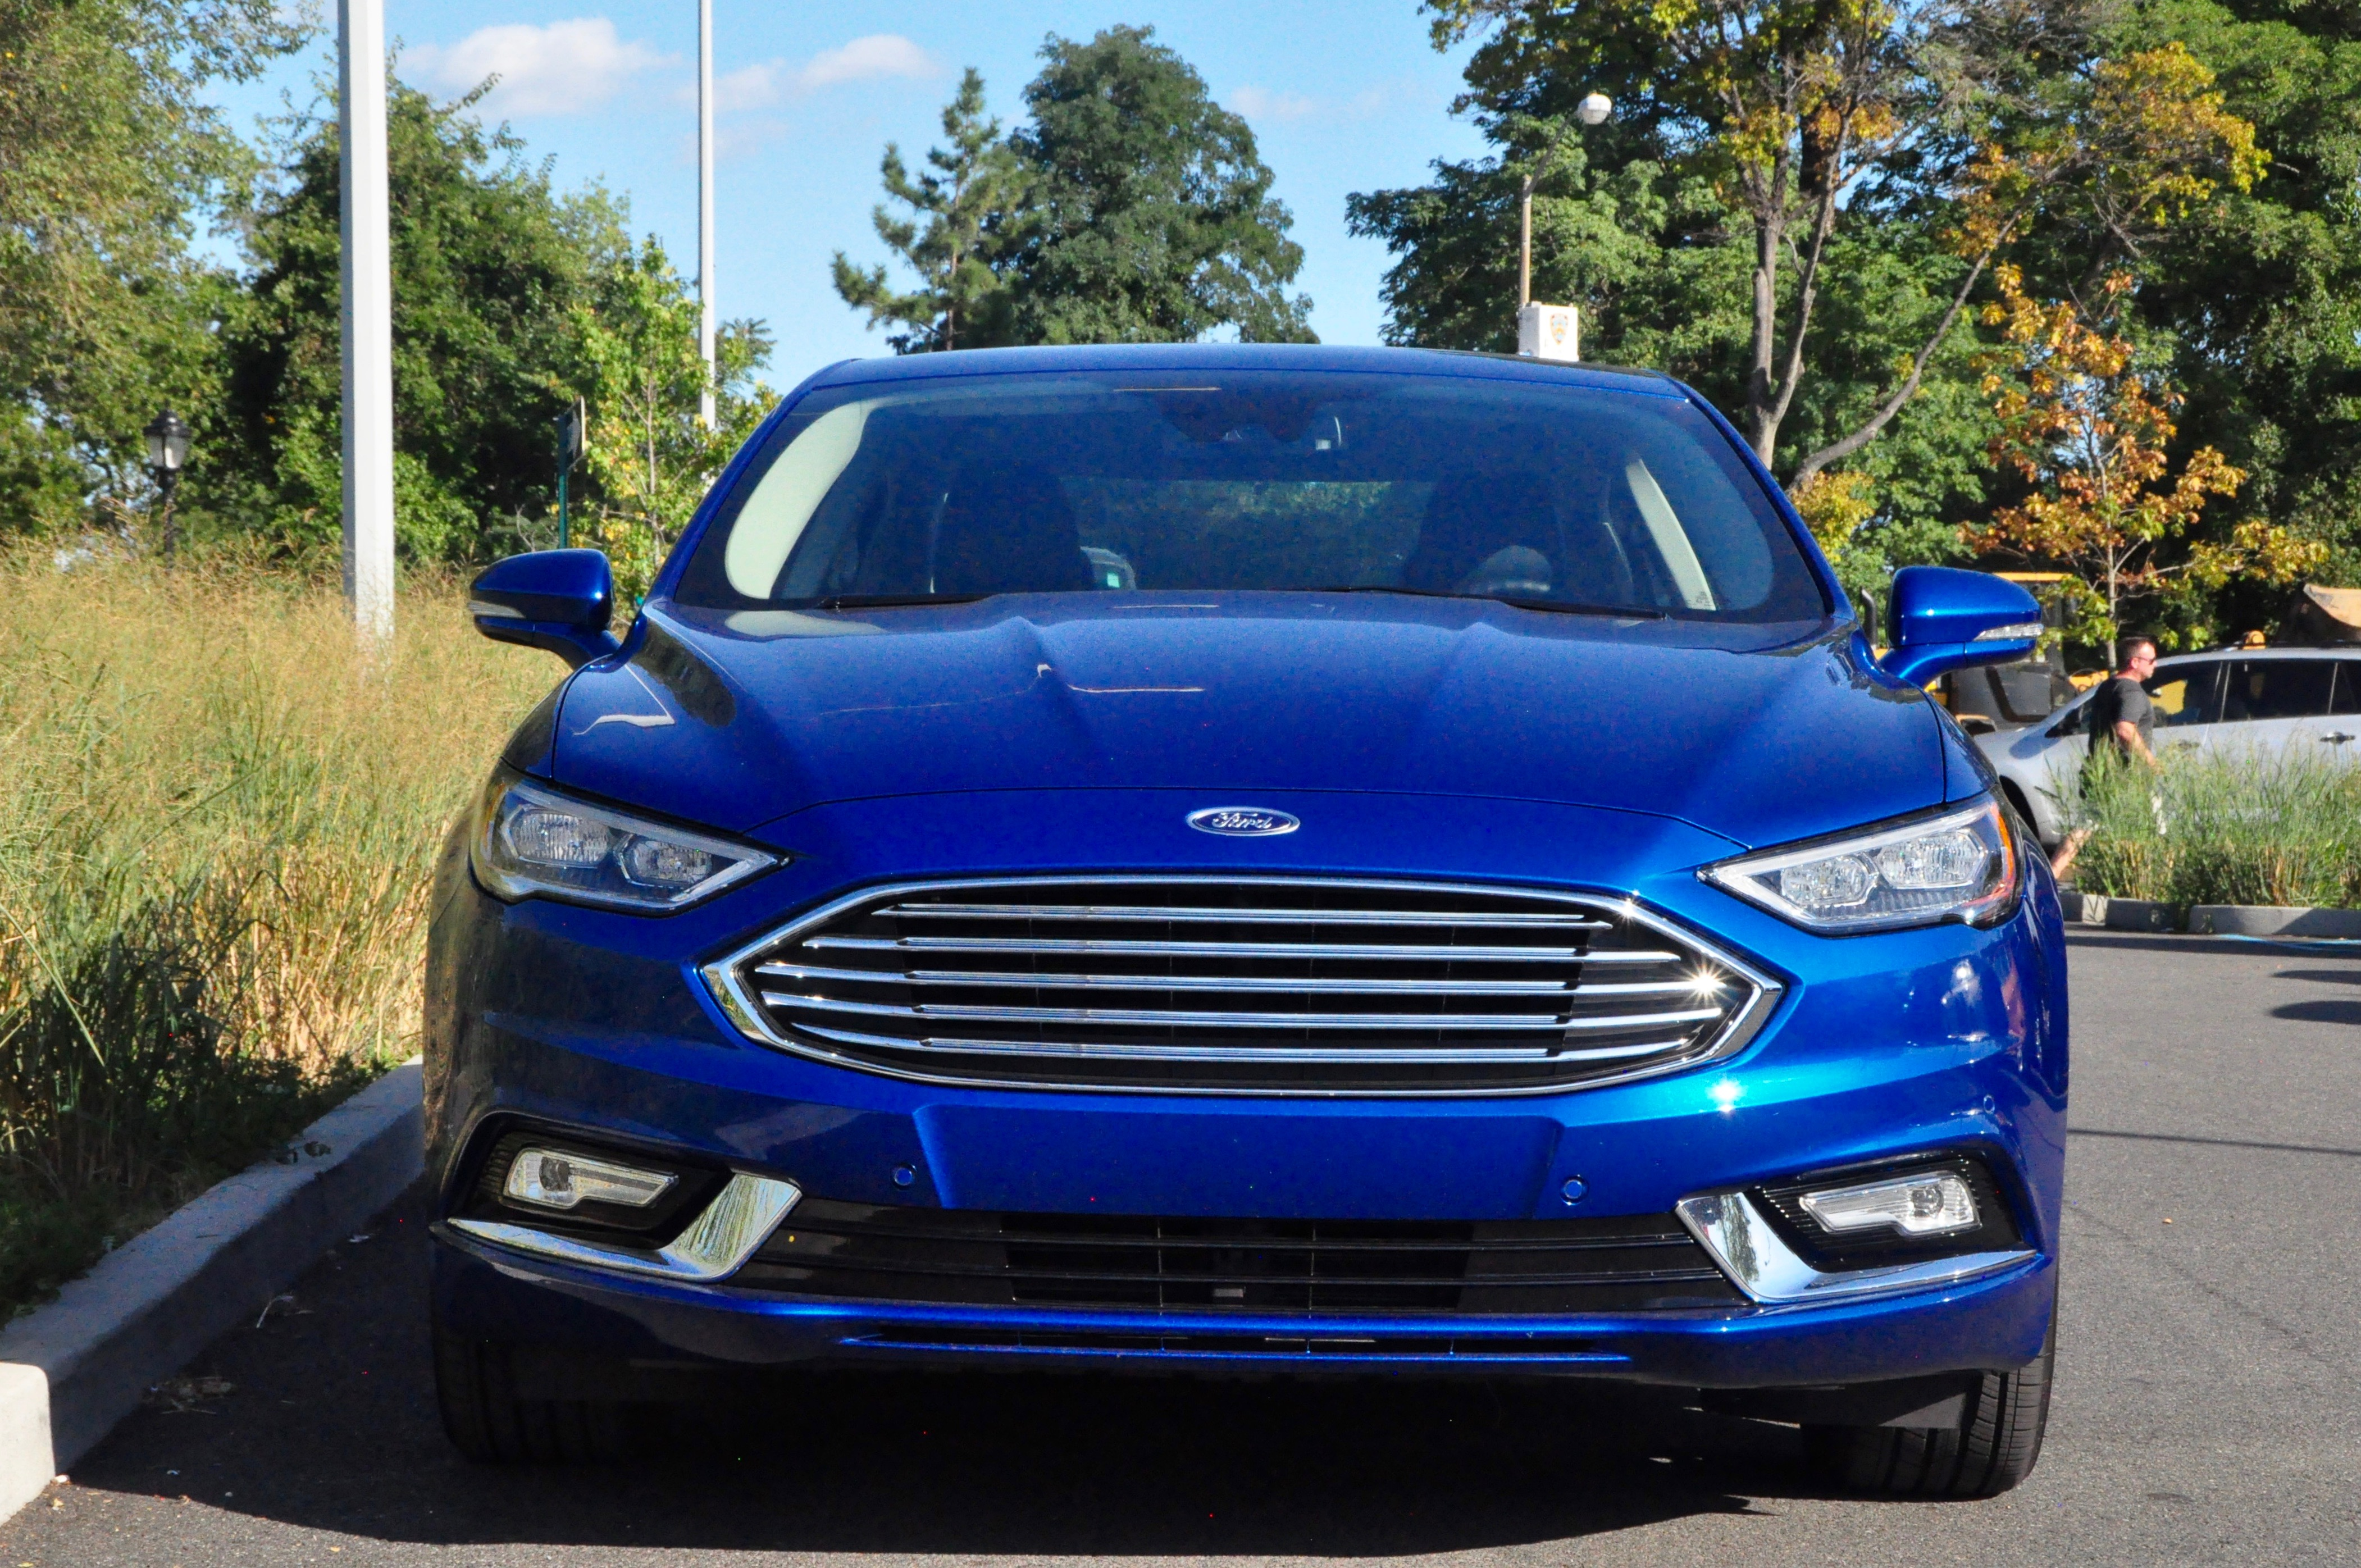 2017 ford fusion titanium hybrid first look and review frequent business traveler. Black Bedroom Furniture Sets. Home Design Ideas